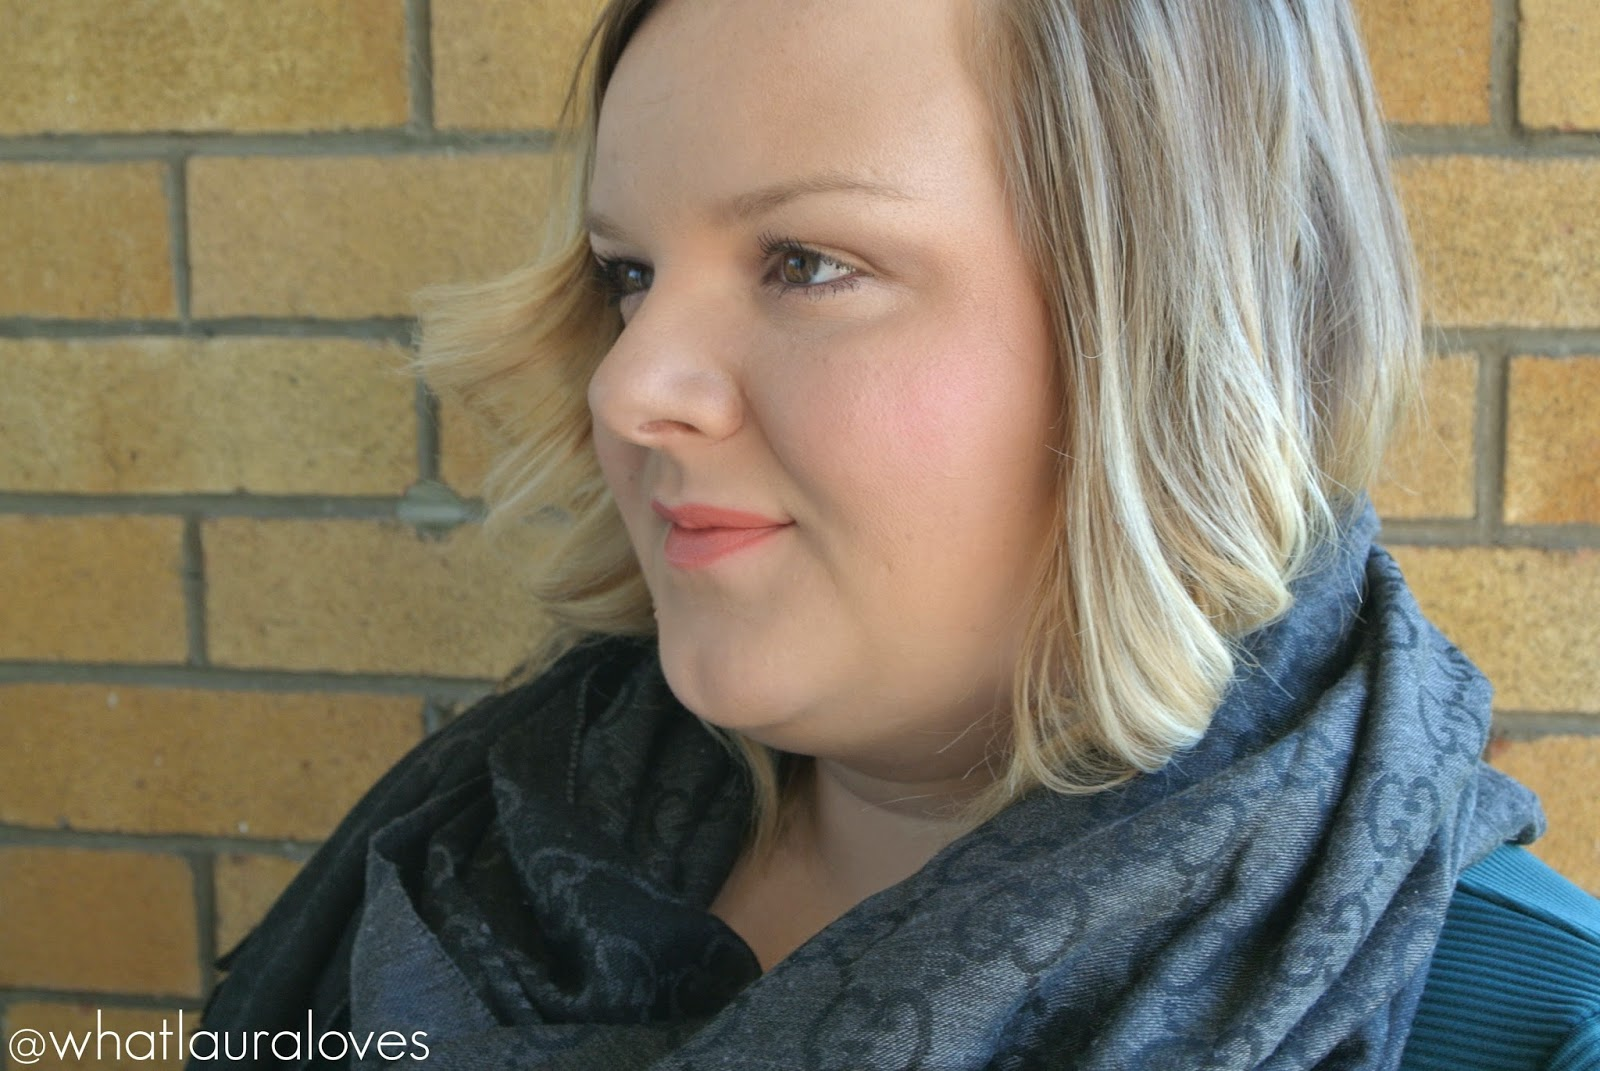 Makeup Revolution The One Blush Stick in Matte Rush worn on lips and cheeks Swatches and Review